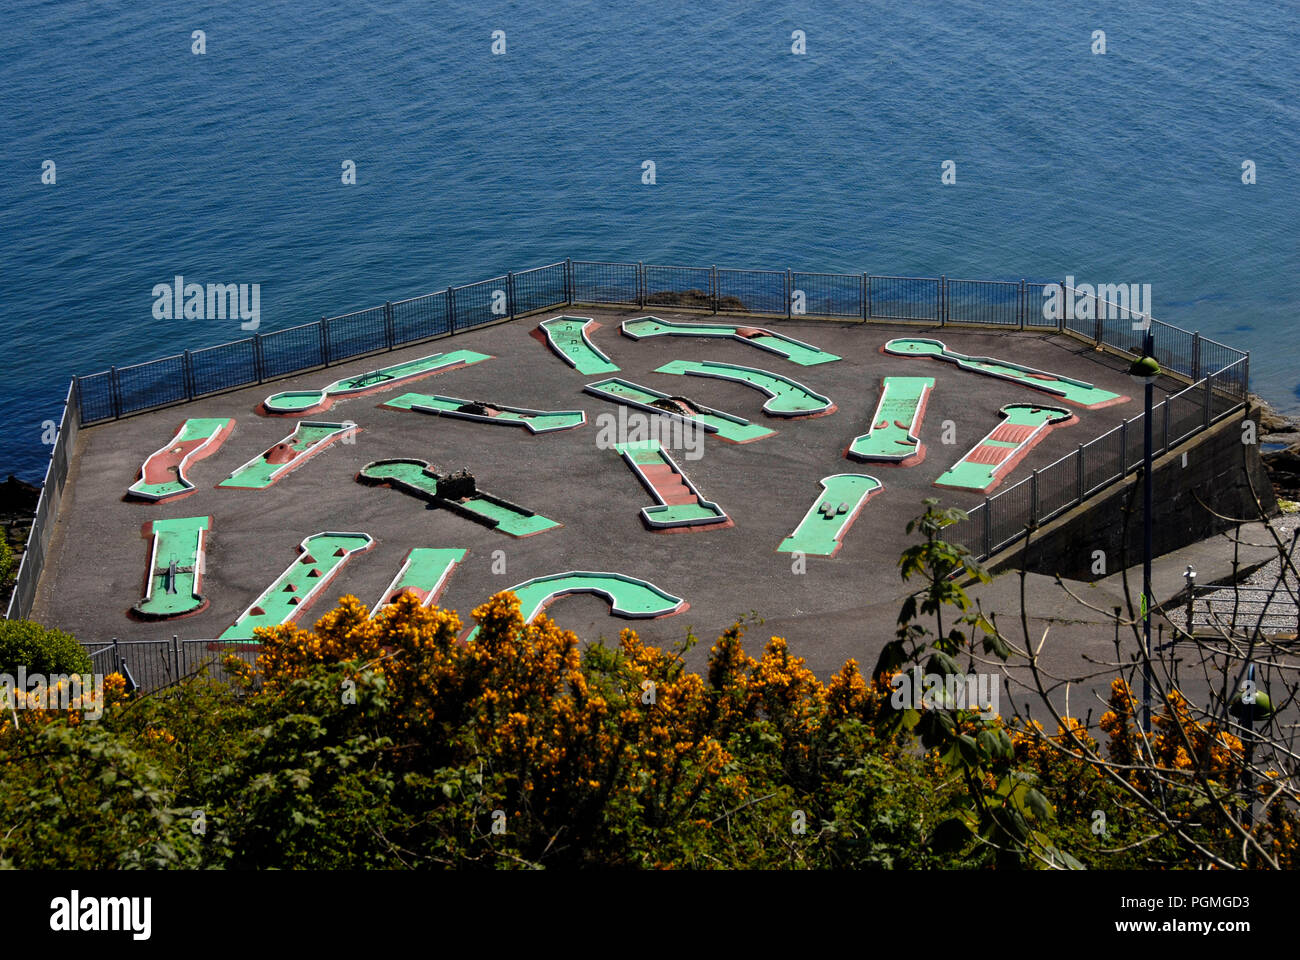 Crazy golf course with no participants, Dunoon, Scotland - Stock Image